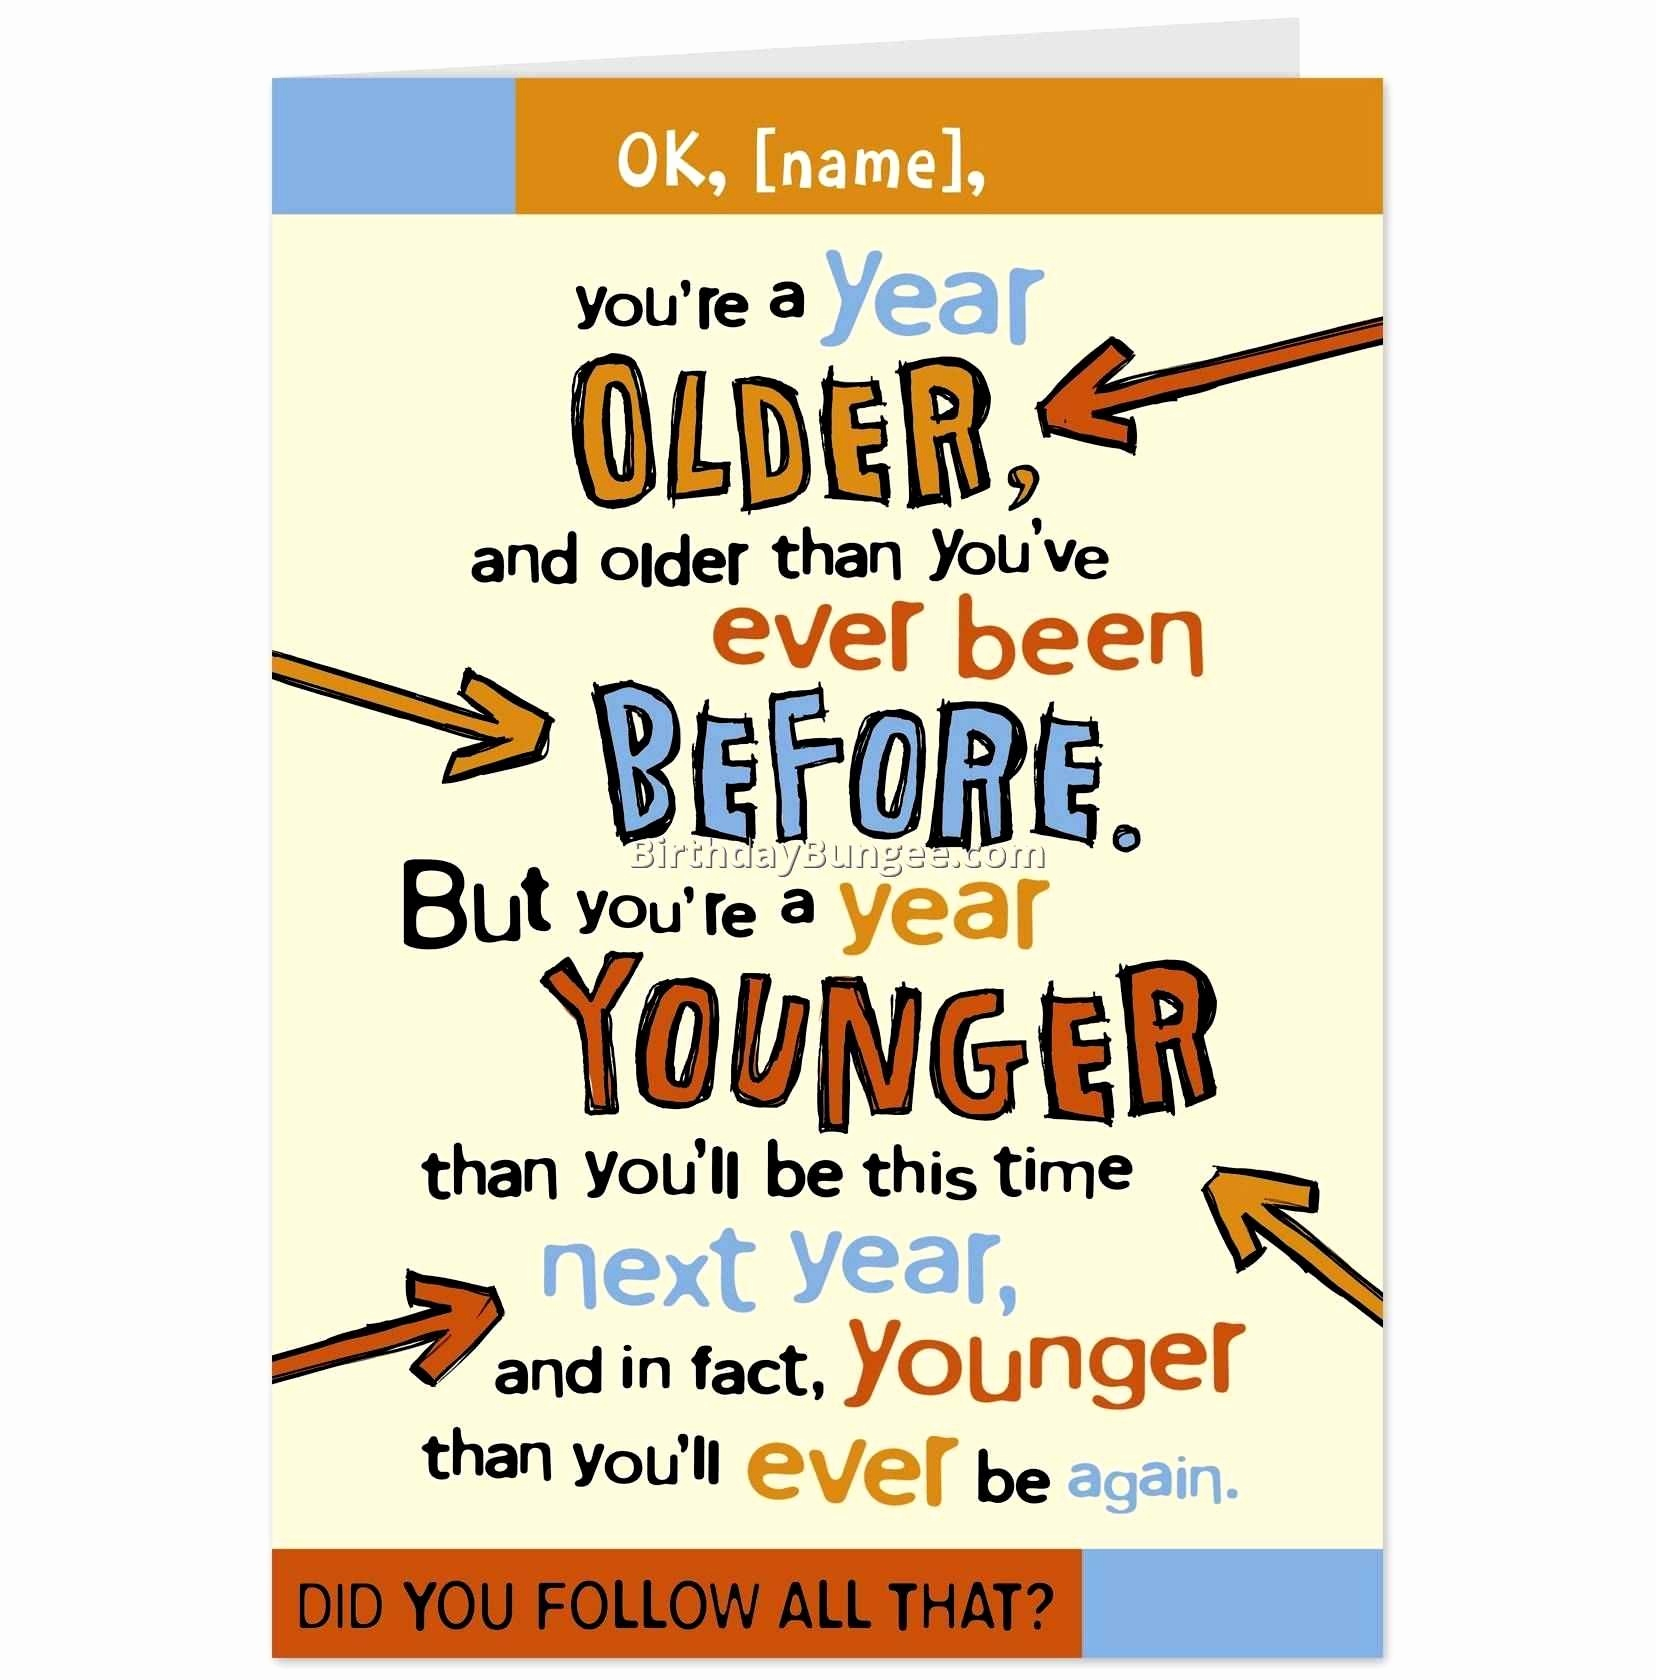 happy birthday dad funny ; happy-birthday-dad-from-daughter-cards-new-funny-birthday-card-sayings-for-dad-linksof-london-of-happy-birthday-dad-from-daughter-cards